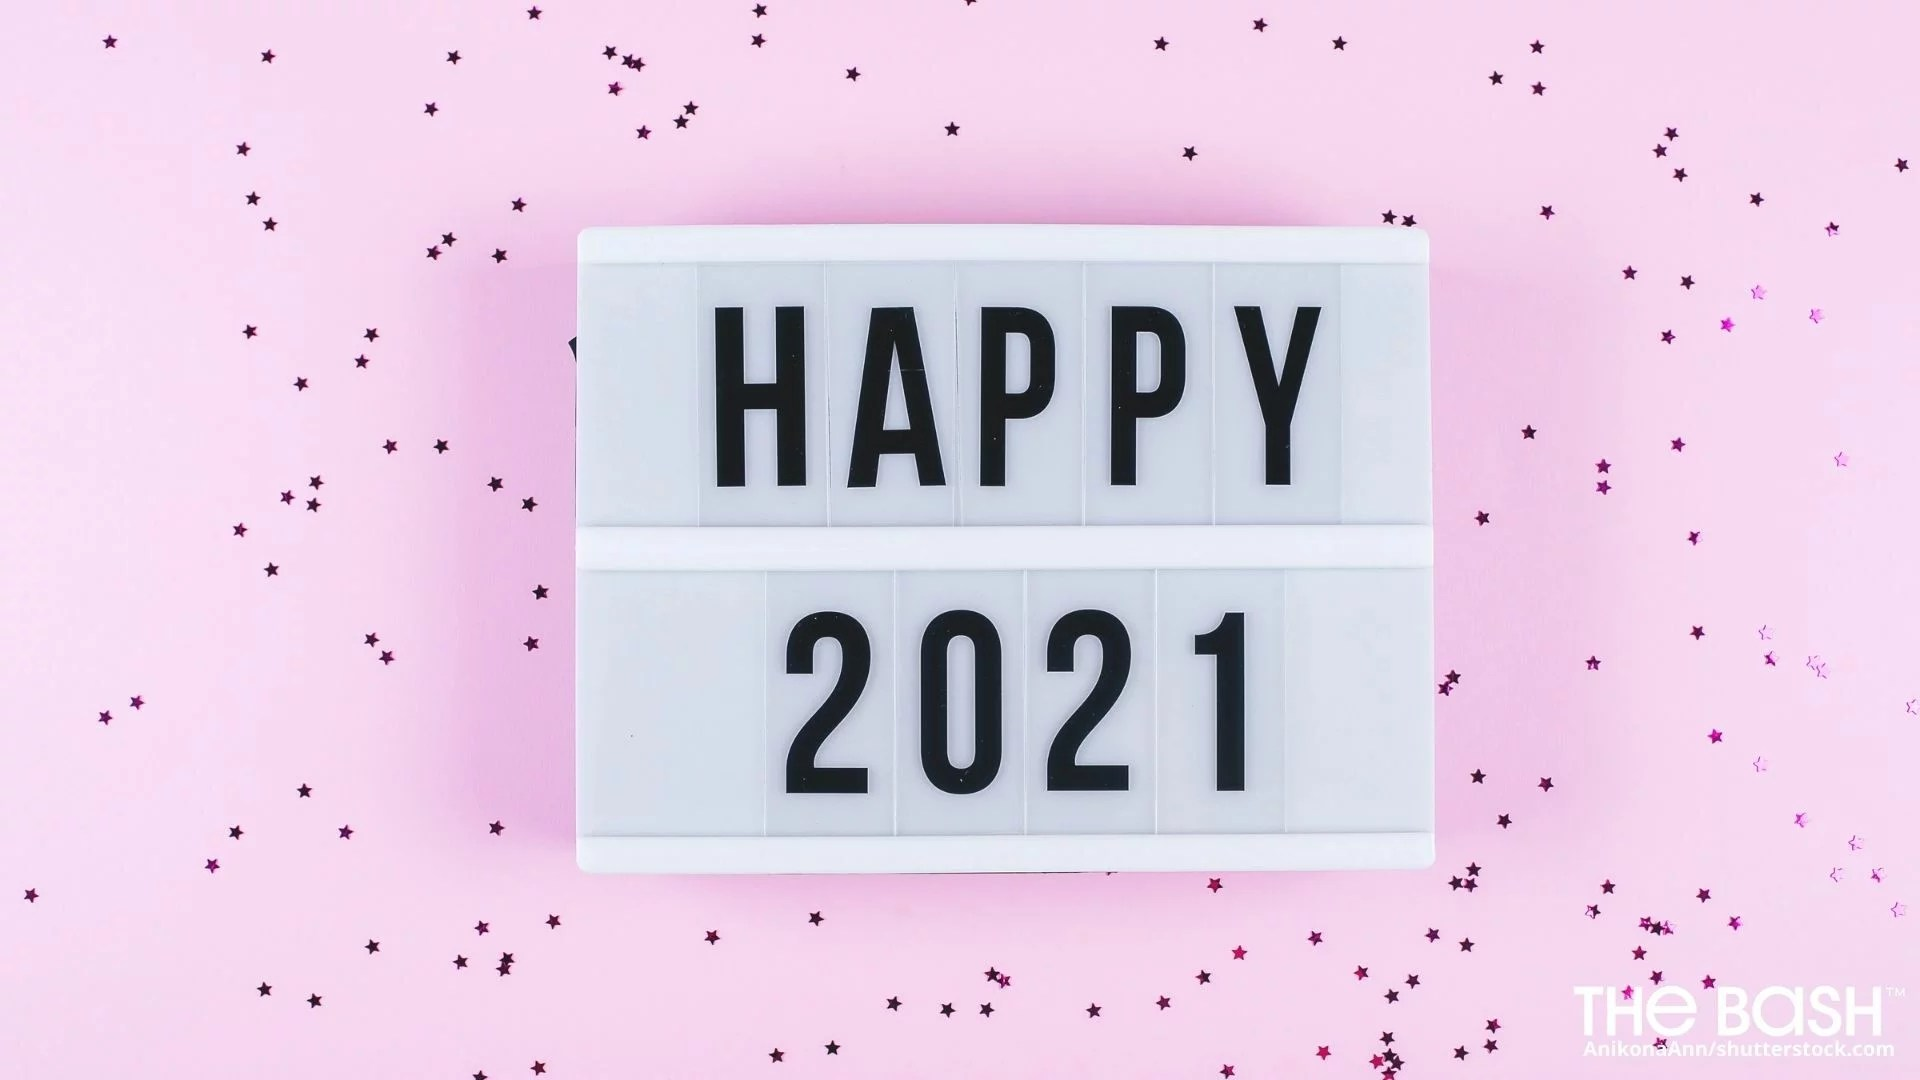 Happy 2021 Zoom Background Add A Dash Of Glamour To Your New Year S Eve Zoom Call With These 30 Background Images Popsugar Tech Photo 24